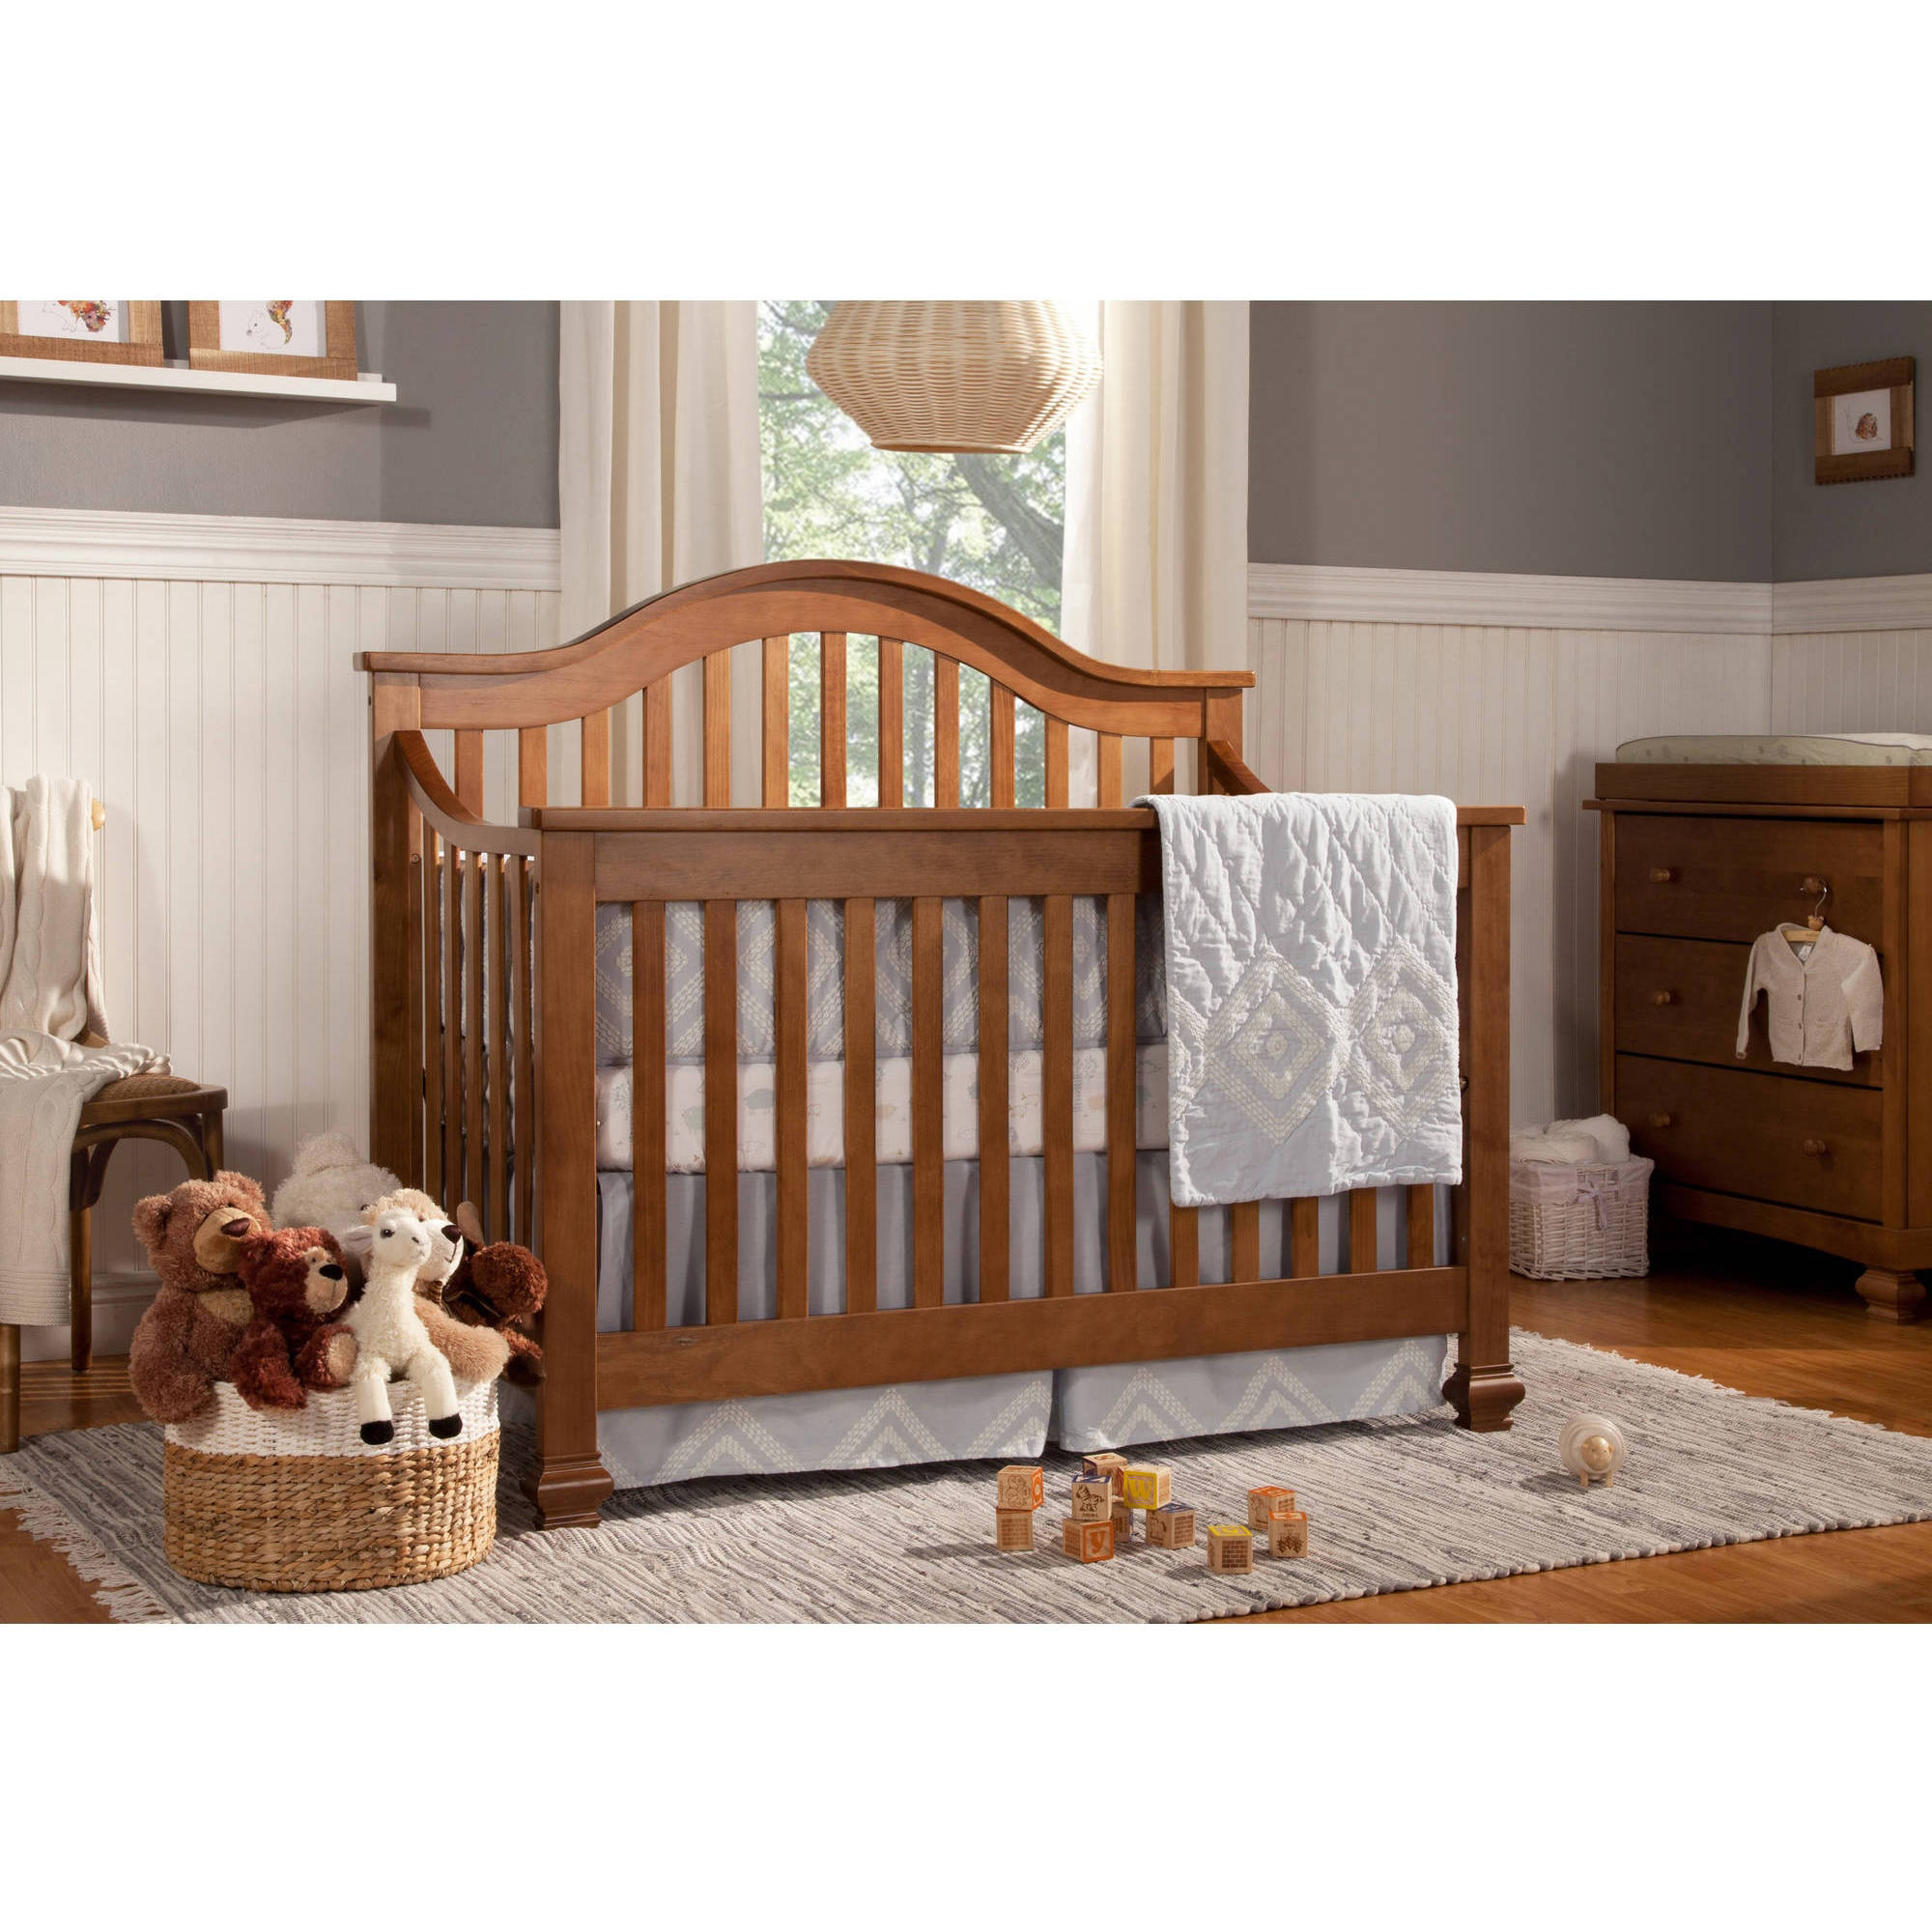 DaVinci Clover 4-in-1 Convertible Crib, Chestnut